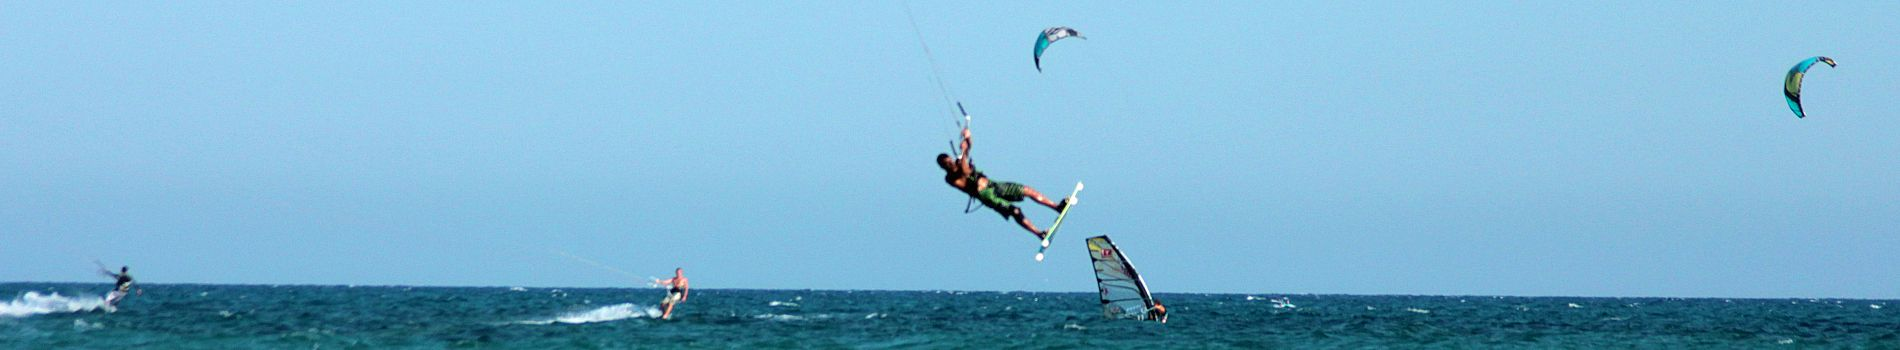 Kite & Wind Surfing